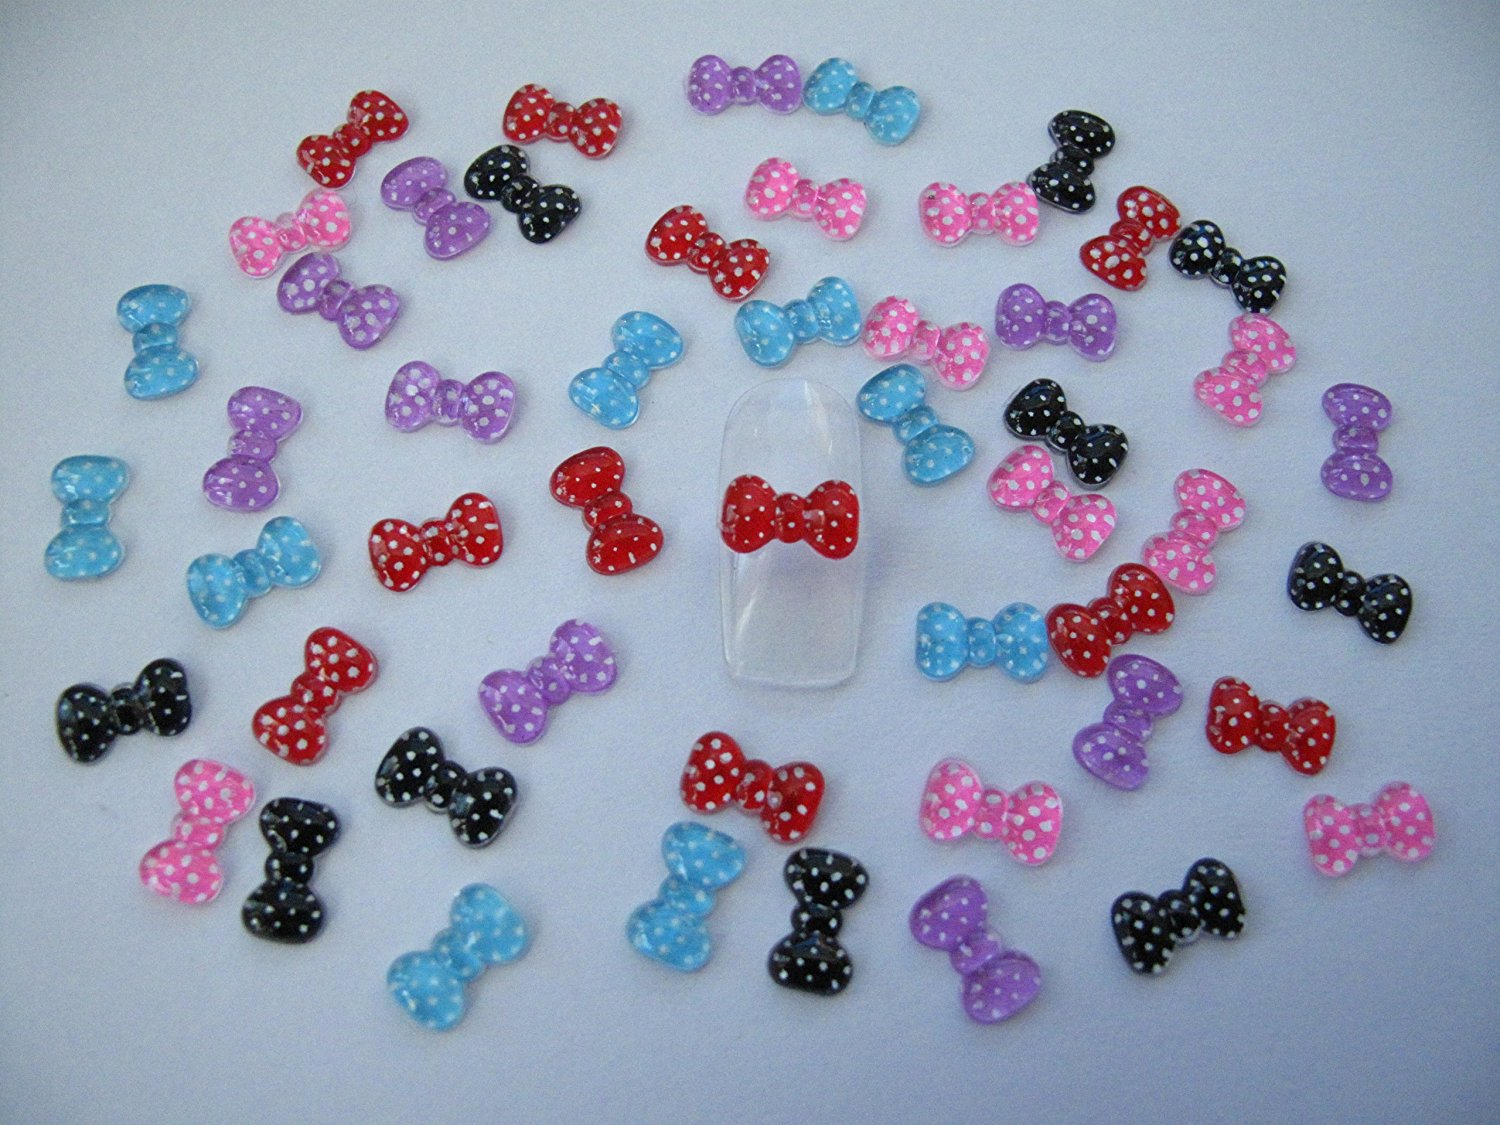 Cheap 3d Nails Bows, find 3d Nails Bows deals on line at Alibaba.com